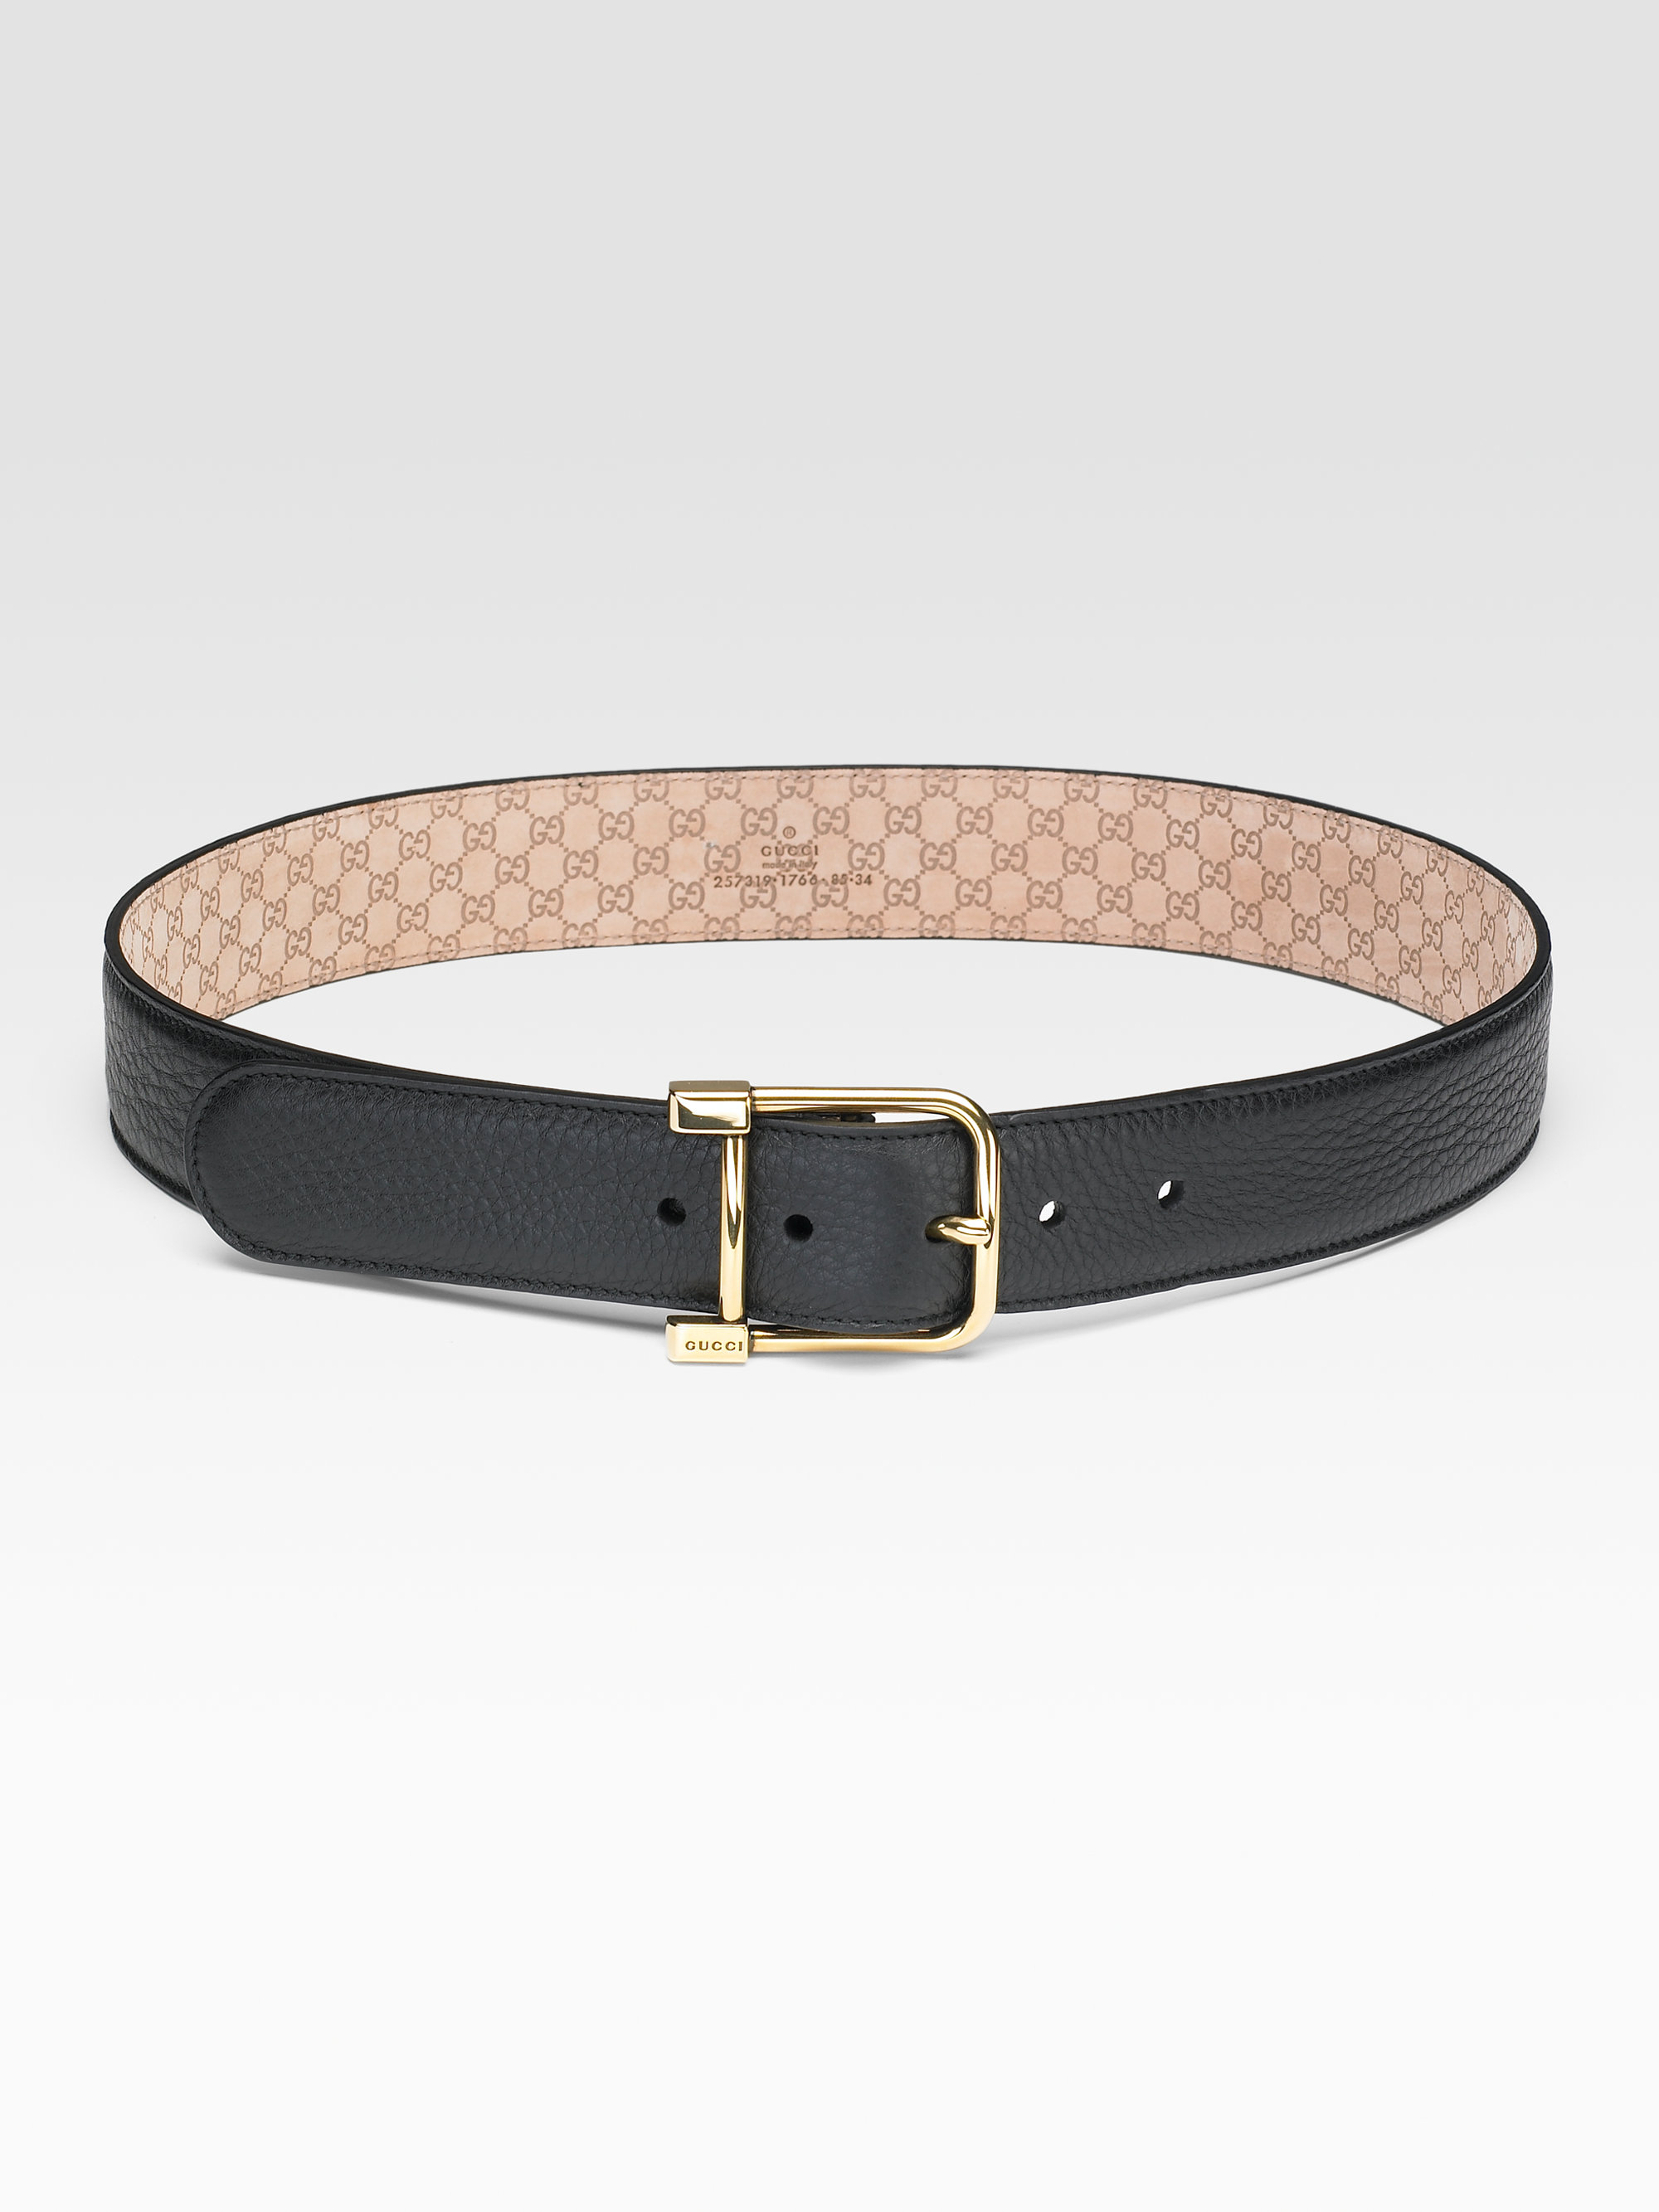 Gucci Leather Belt in Black | Lyst